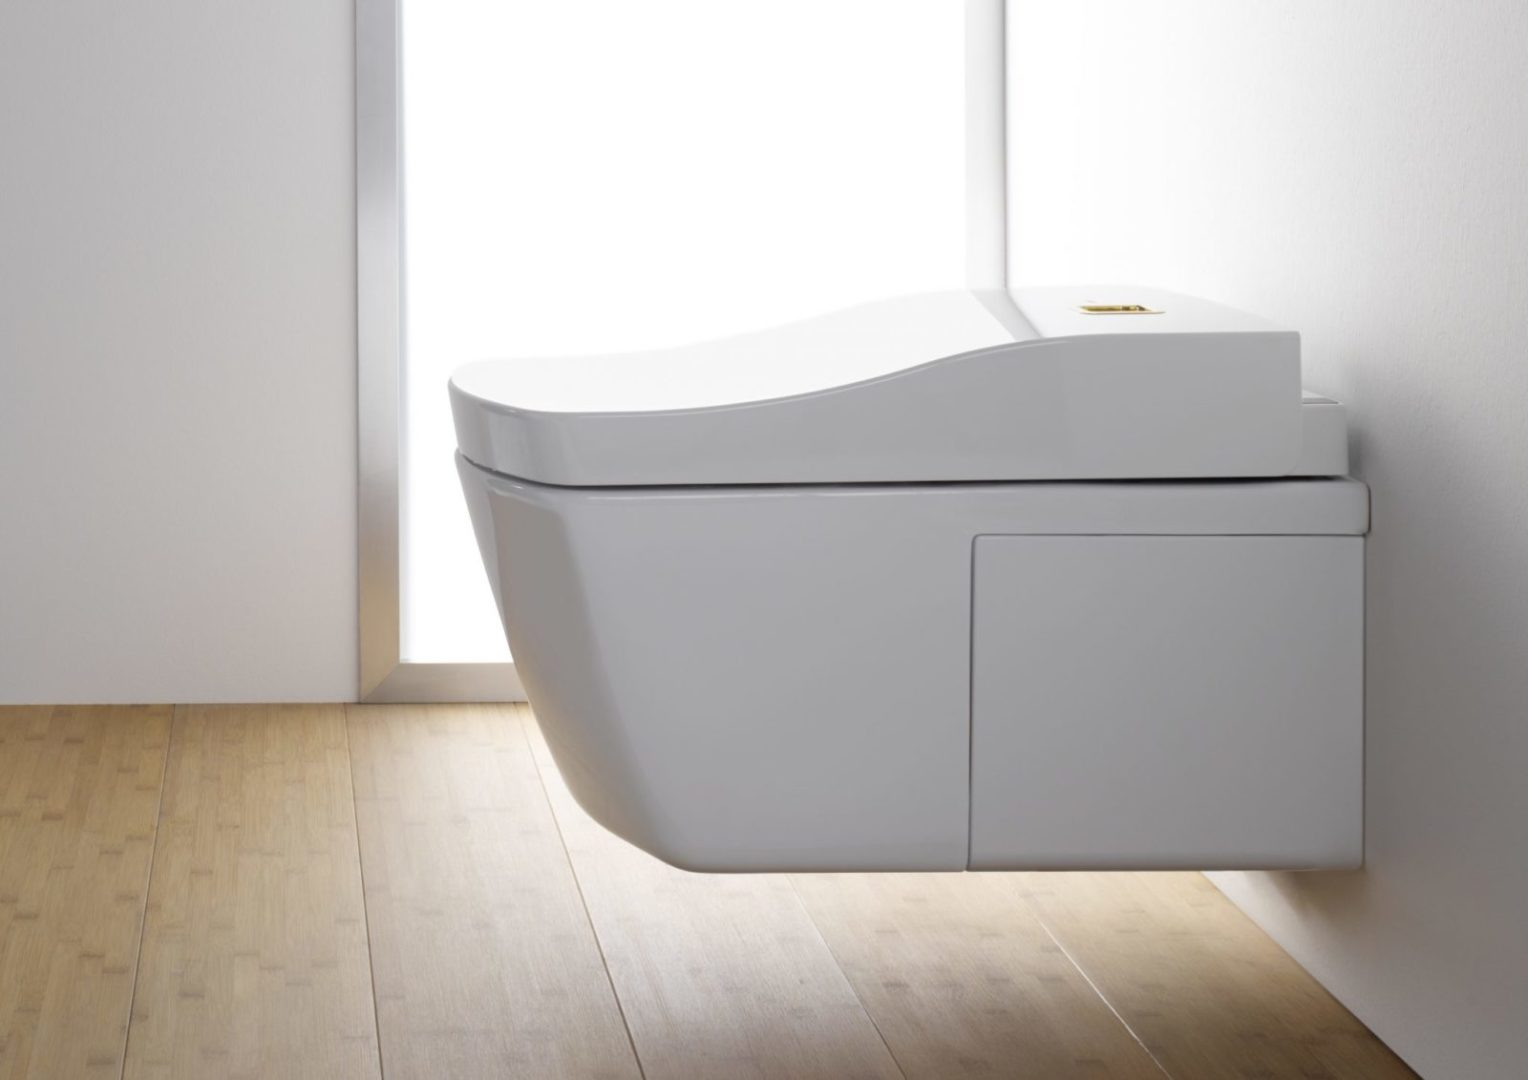 TOTO NEOREST AC, WASHLET™ Унитаз с сидением-биде и с дистанционным управлением